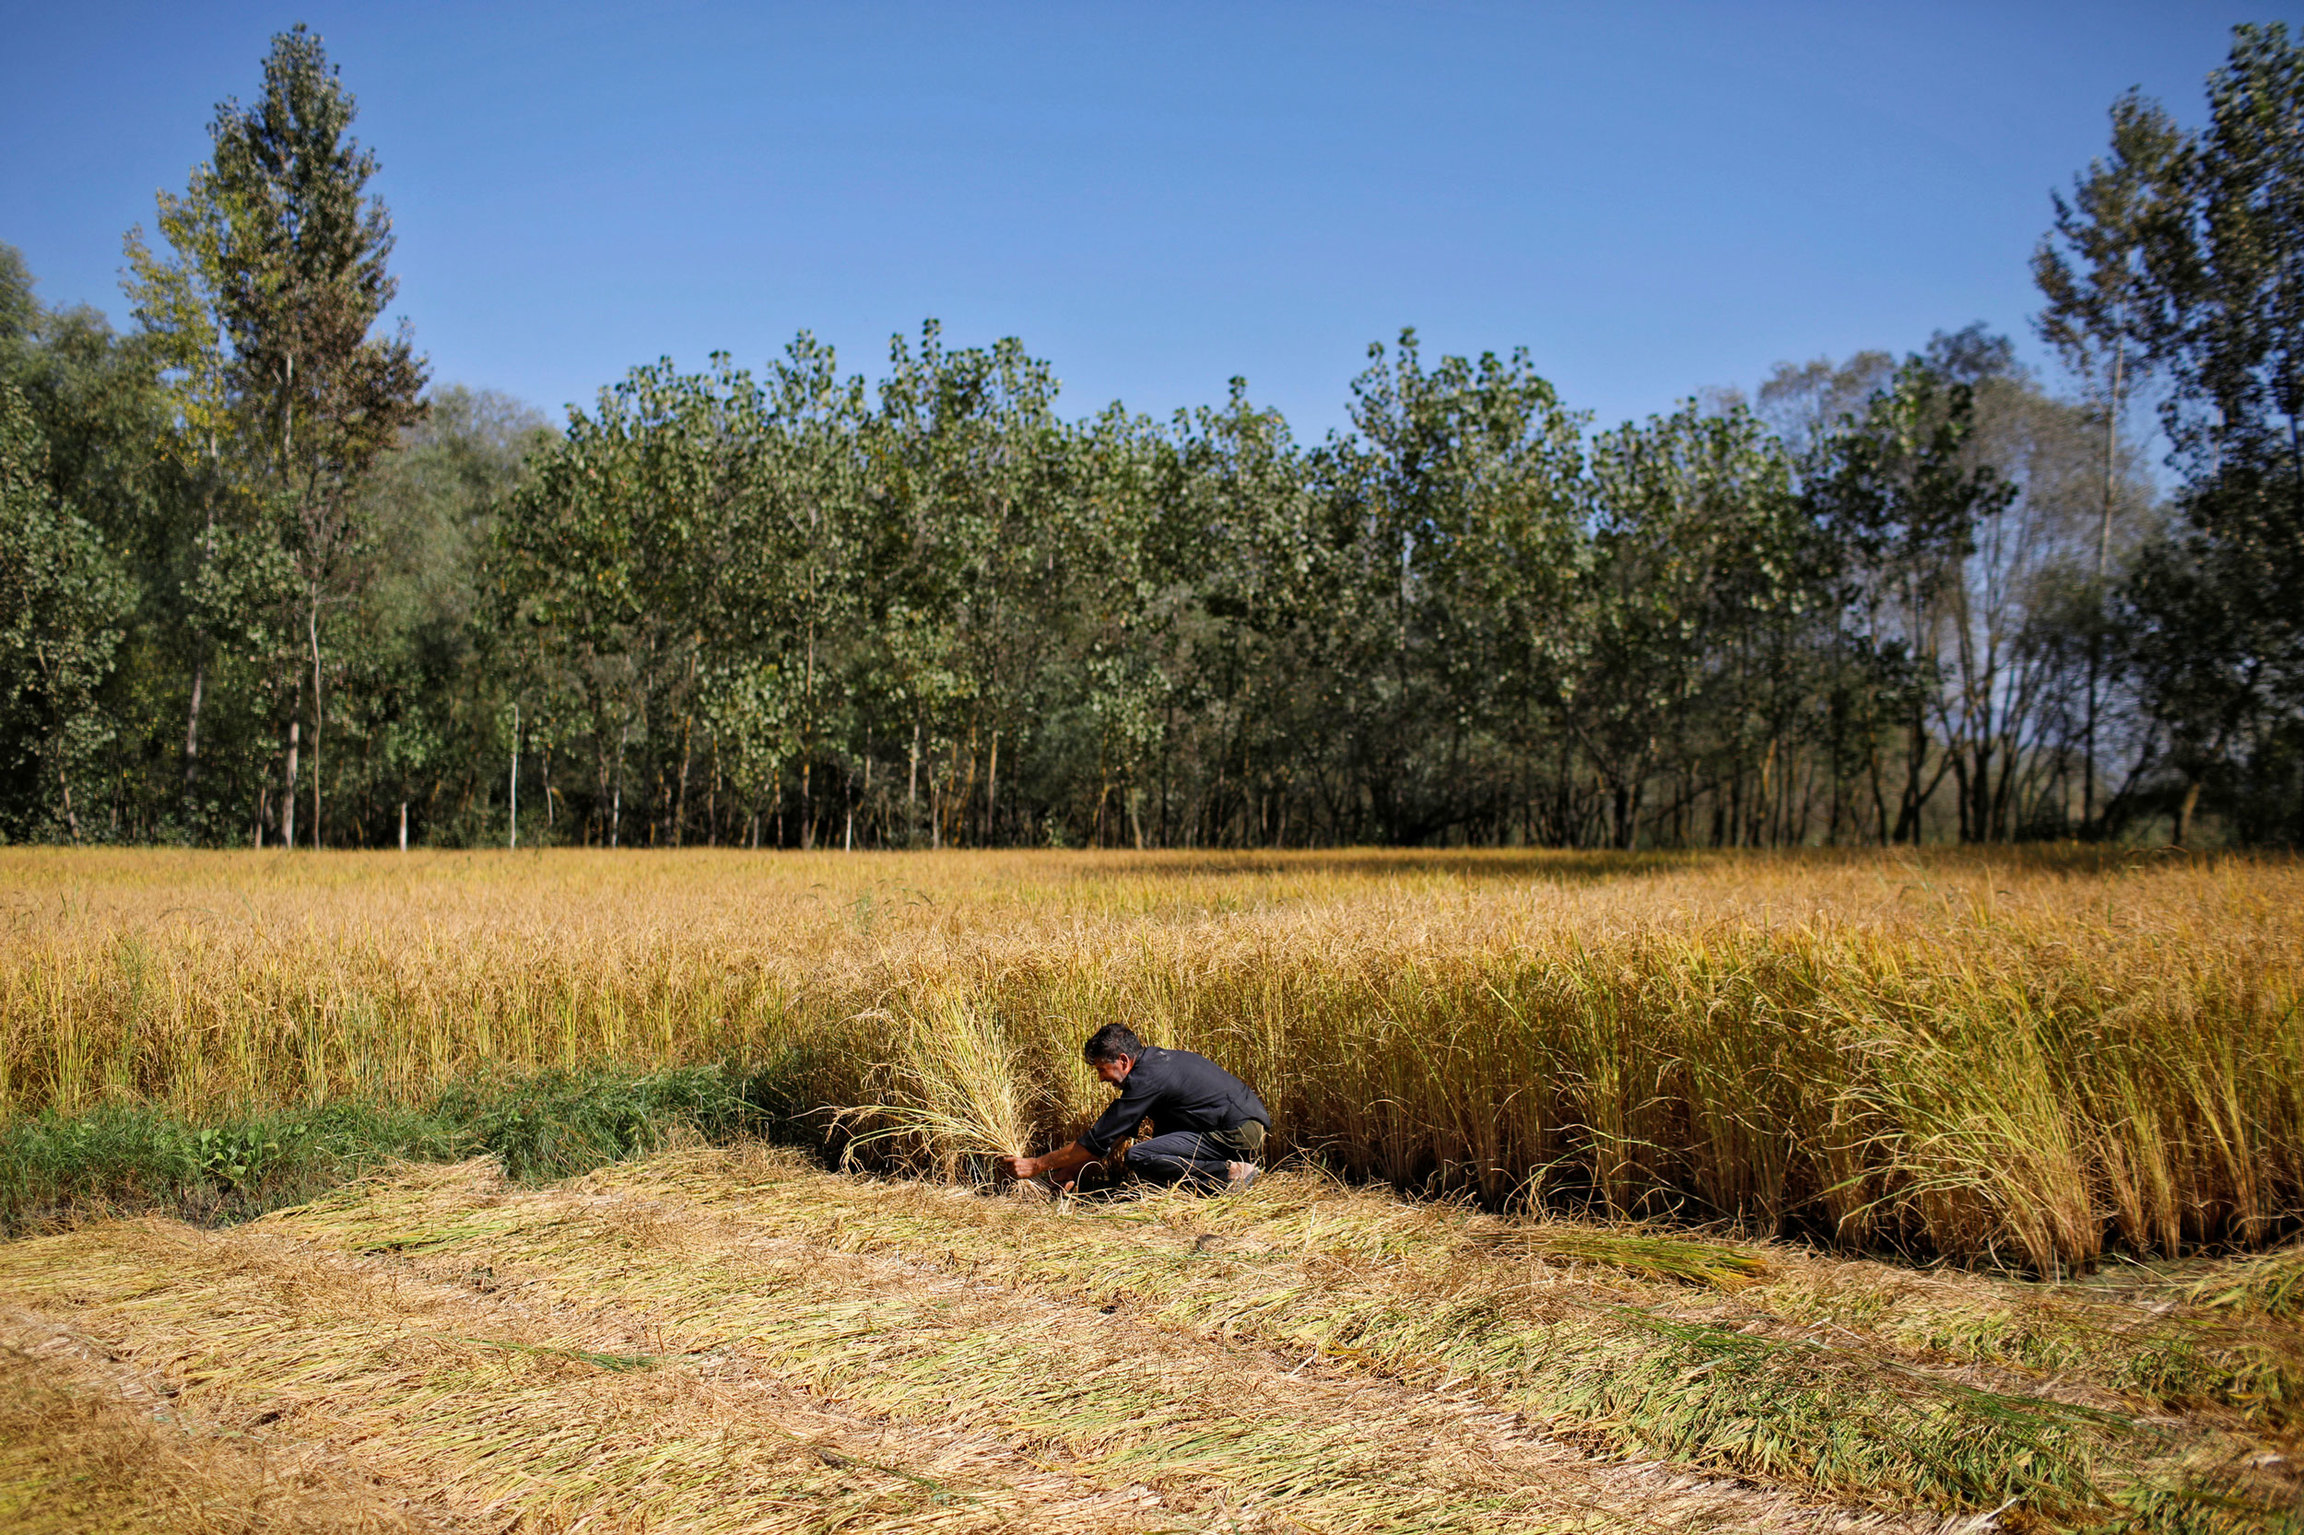 A man is shown kneeling next to a field of golden colored rice paddy.